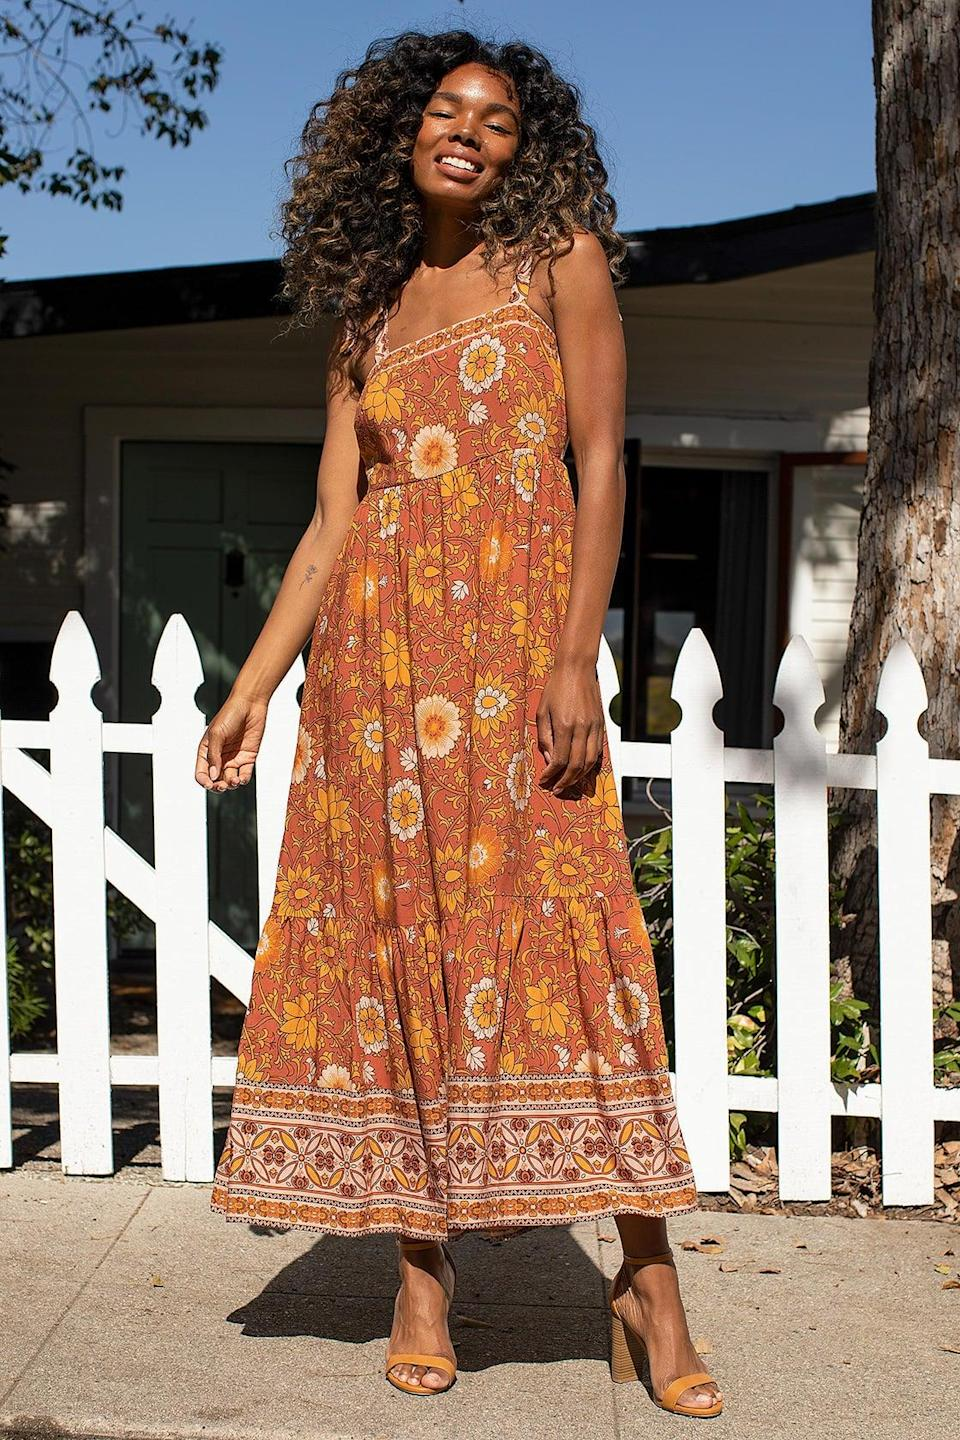 """<br><br><strong>Lulus</strong> In a Groove Rust Brown Floral Print Tie-Strap Maxi Dress, $, available at <a href=""""https://go.skimresources.com/?id=30283X879131&url=https%3A%2F%2Fwww.lulus.com%2Fproducts%2Fin-a-groove-rust-brown-floral-print-tie-strap-maxi-dress%2F1420076.html"""" rel=""""nofollow noopener"""" target=""""_blank"""" data-ylk=""""slk:Lulus"""" class=""""link rapid-noclick-resp"""">Lulus</a>"""